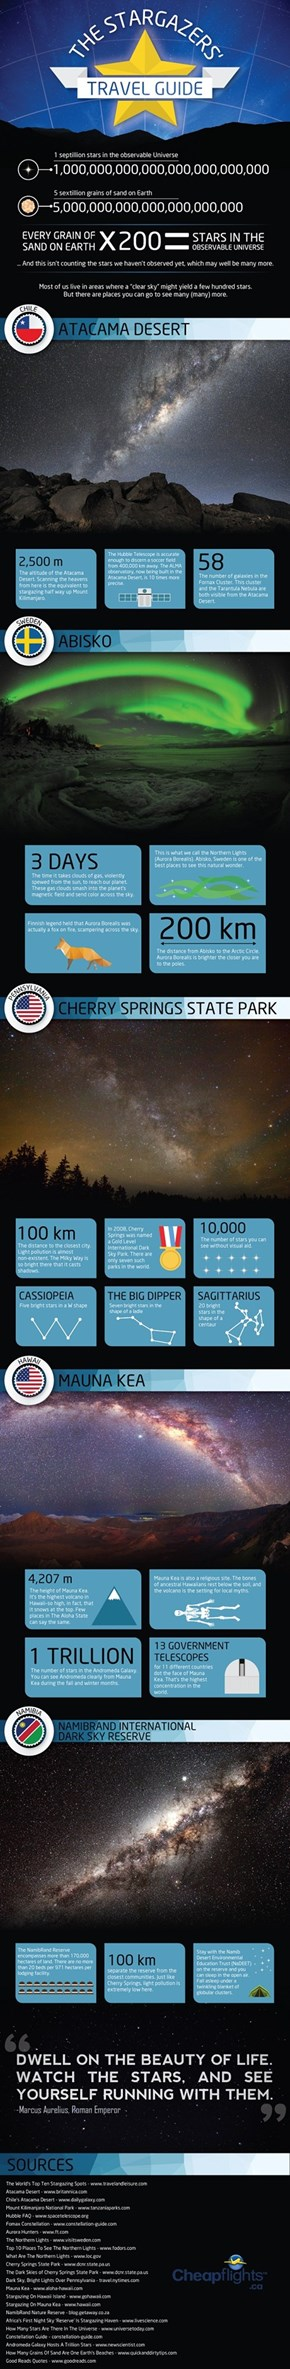 The Stargazers' Travel Guide